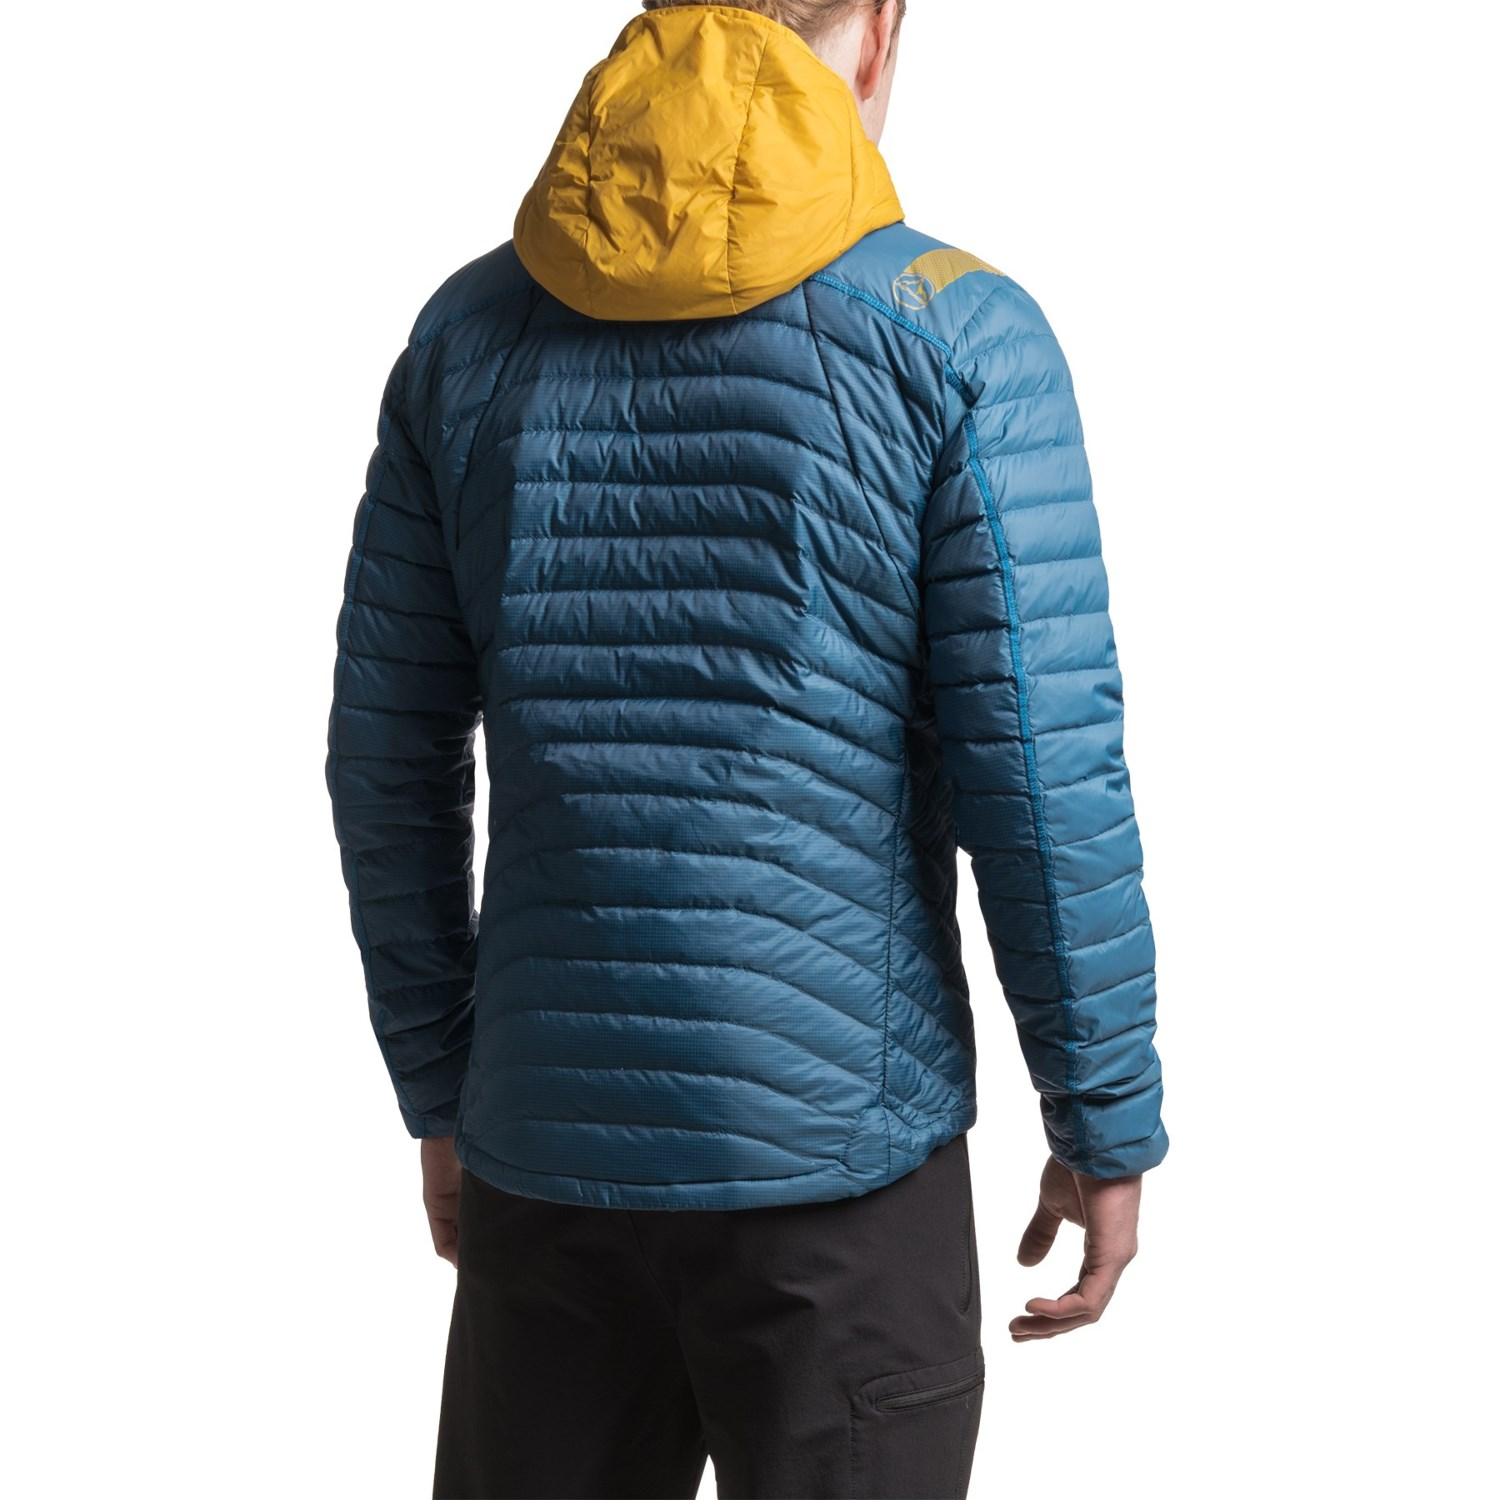 La Sportiva Cosmos Down Jacket (For Men) - Save 59%